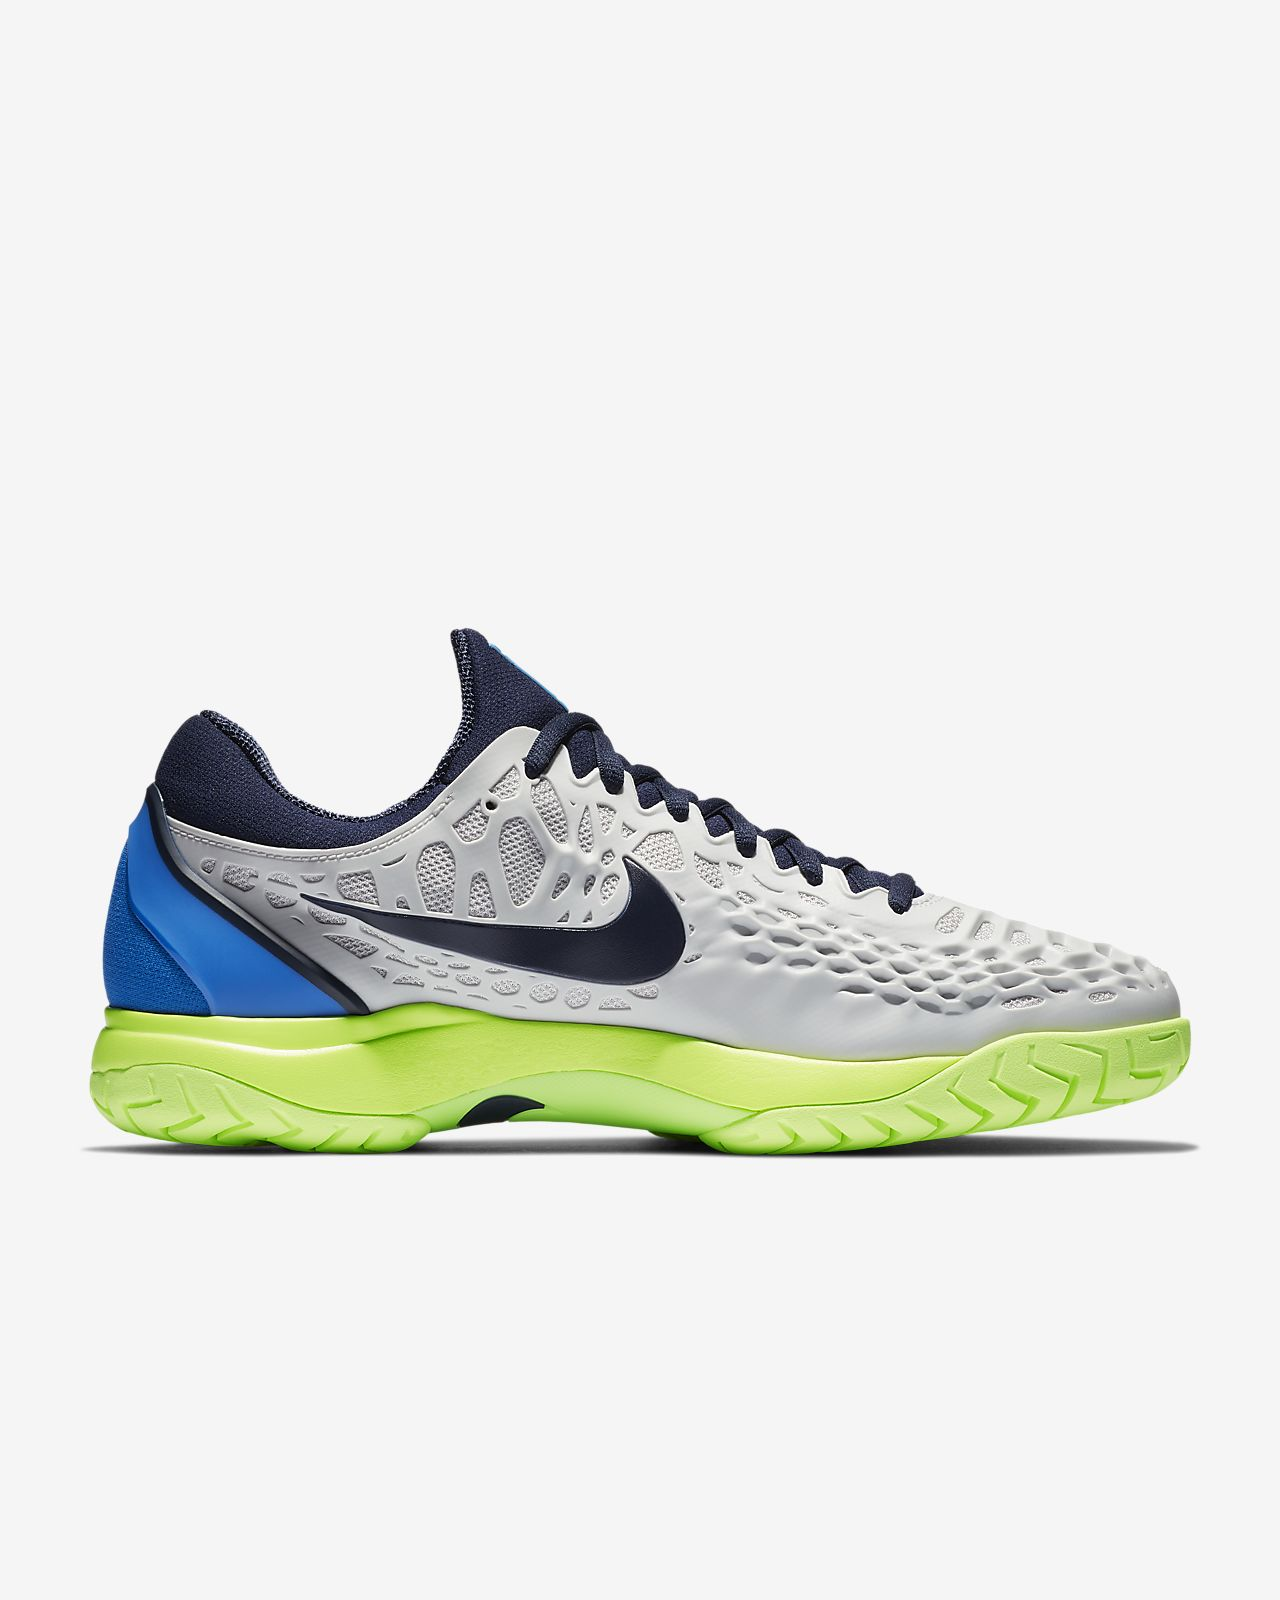 purchase cheap ae14c 0bfc5 ... NikeCourt Zoom Cage 3 Men s Hard Court Tennis Shoe